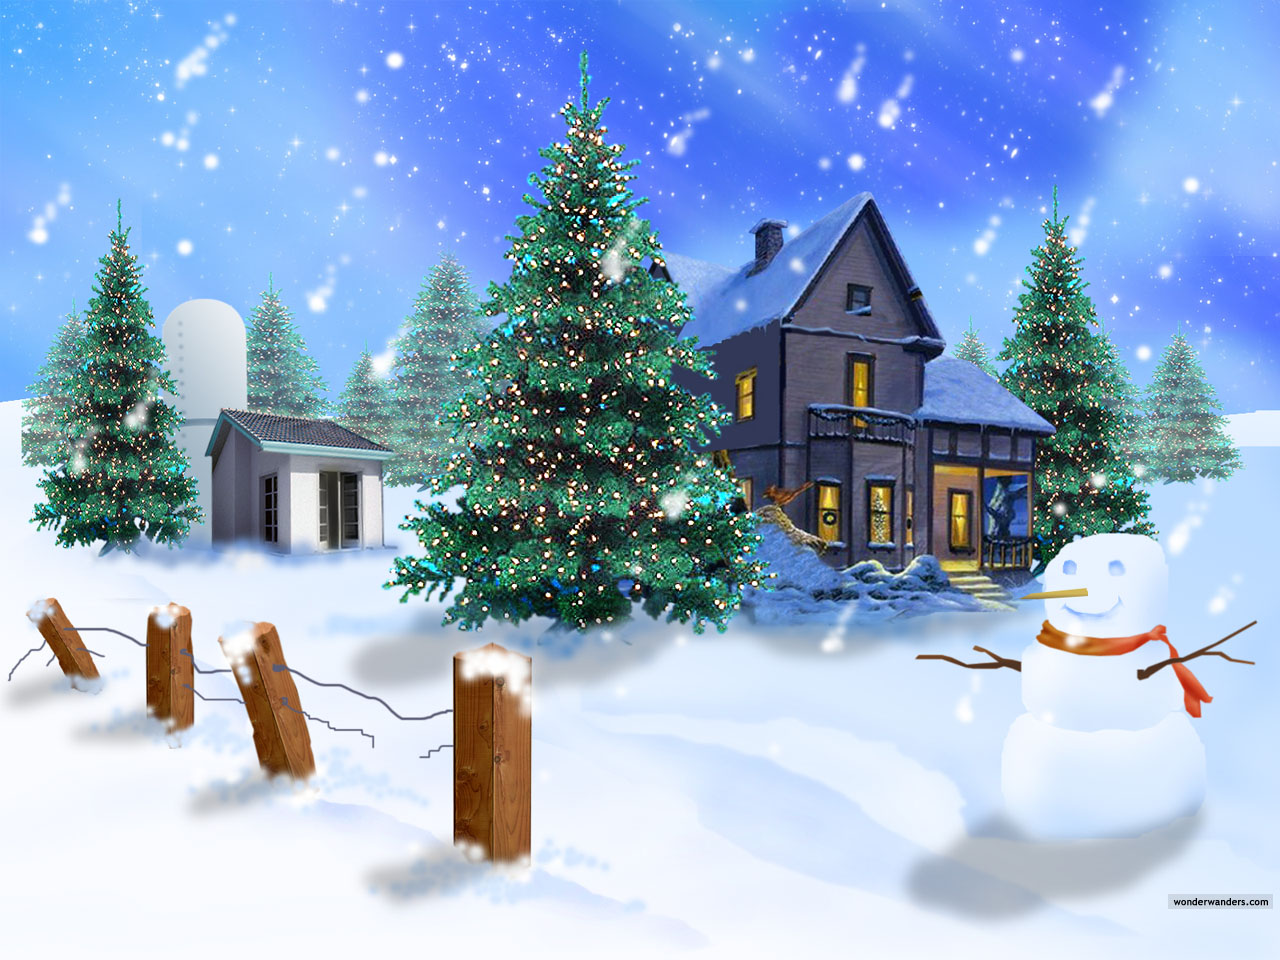 3D Christmas Wallpaper HD| HD Wallpapers ,Backgrounds ,Photos ...